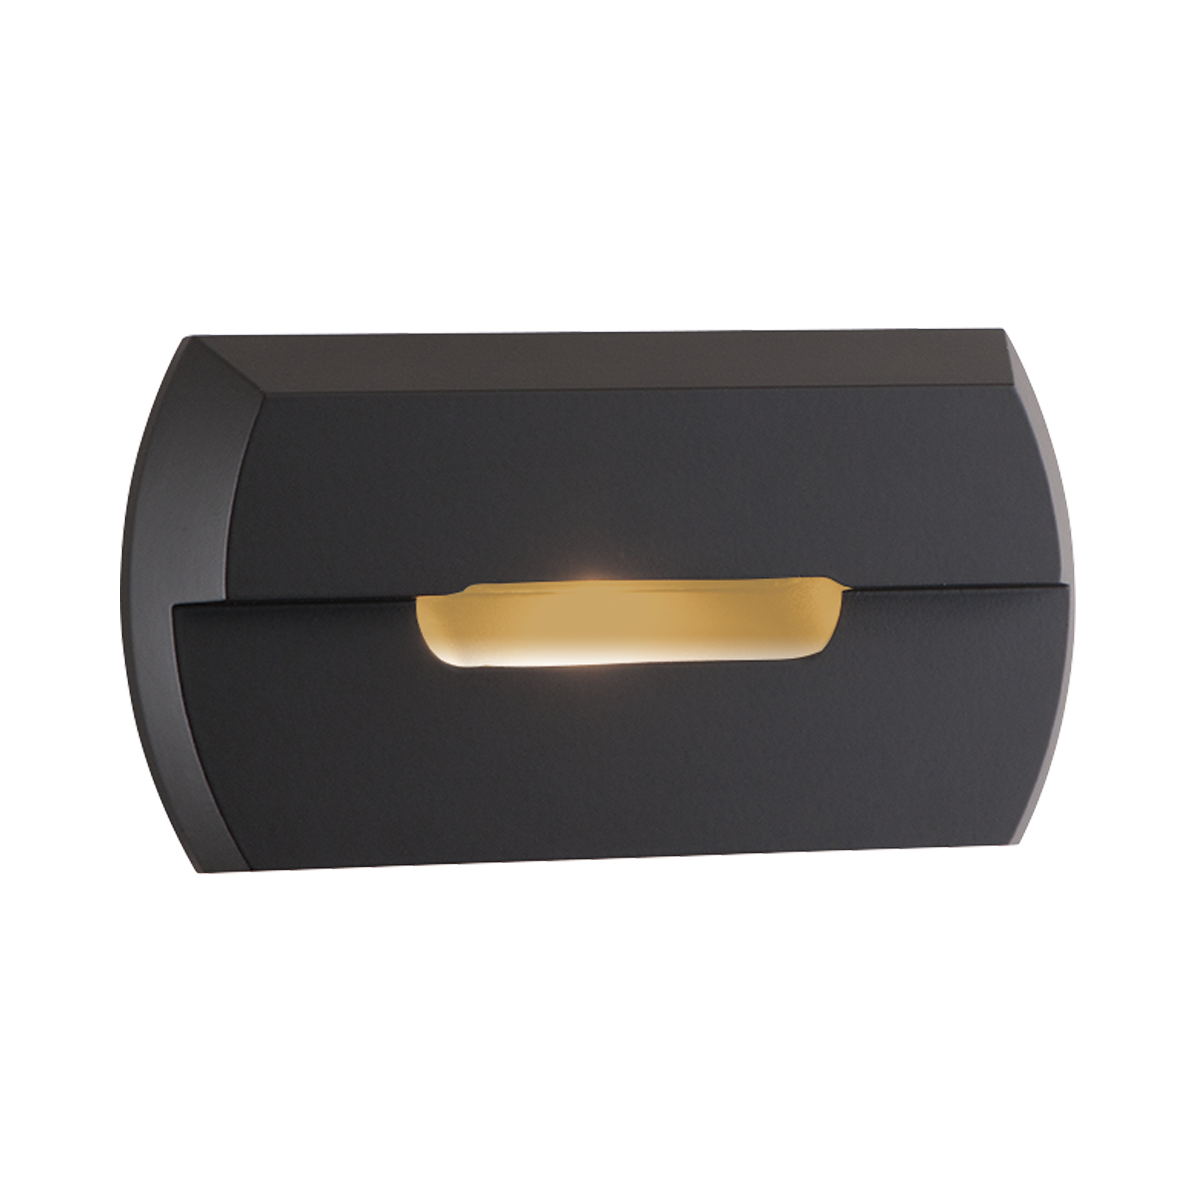 "2-1 - 2"" x 4-3 - 4"" Amber LED Step Light, Bronze Finish"